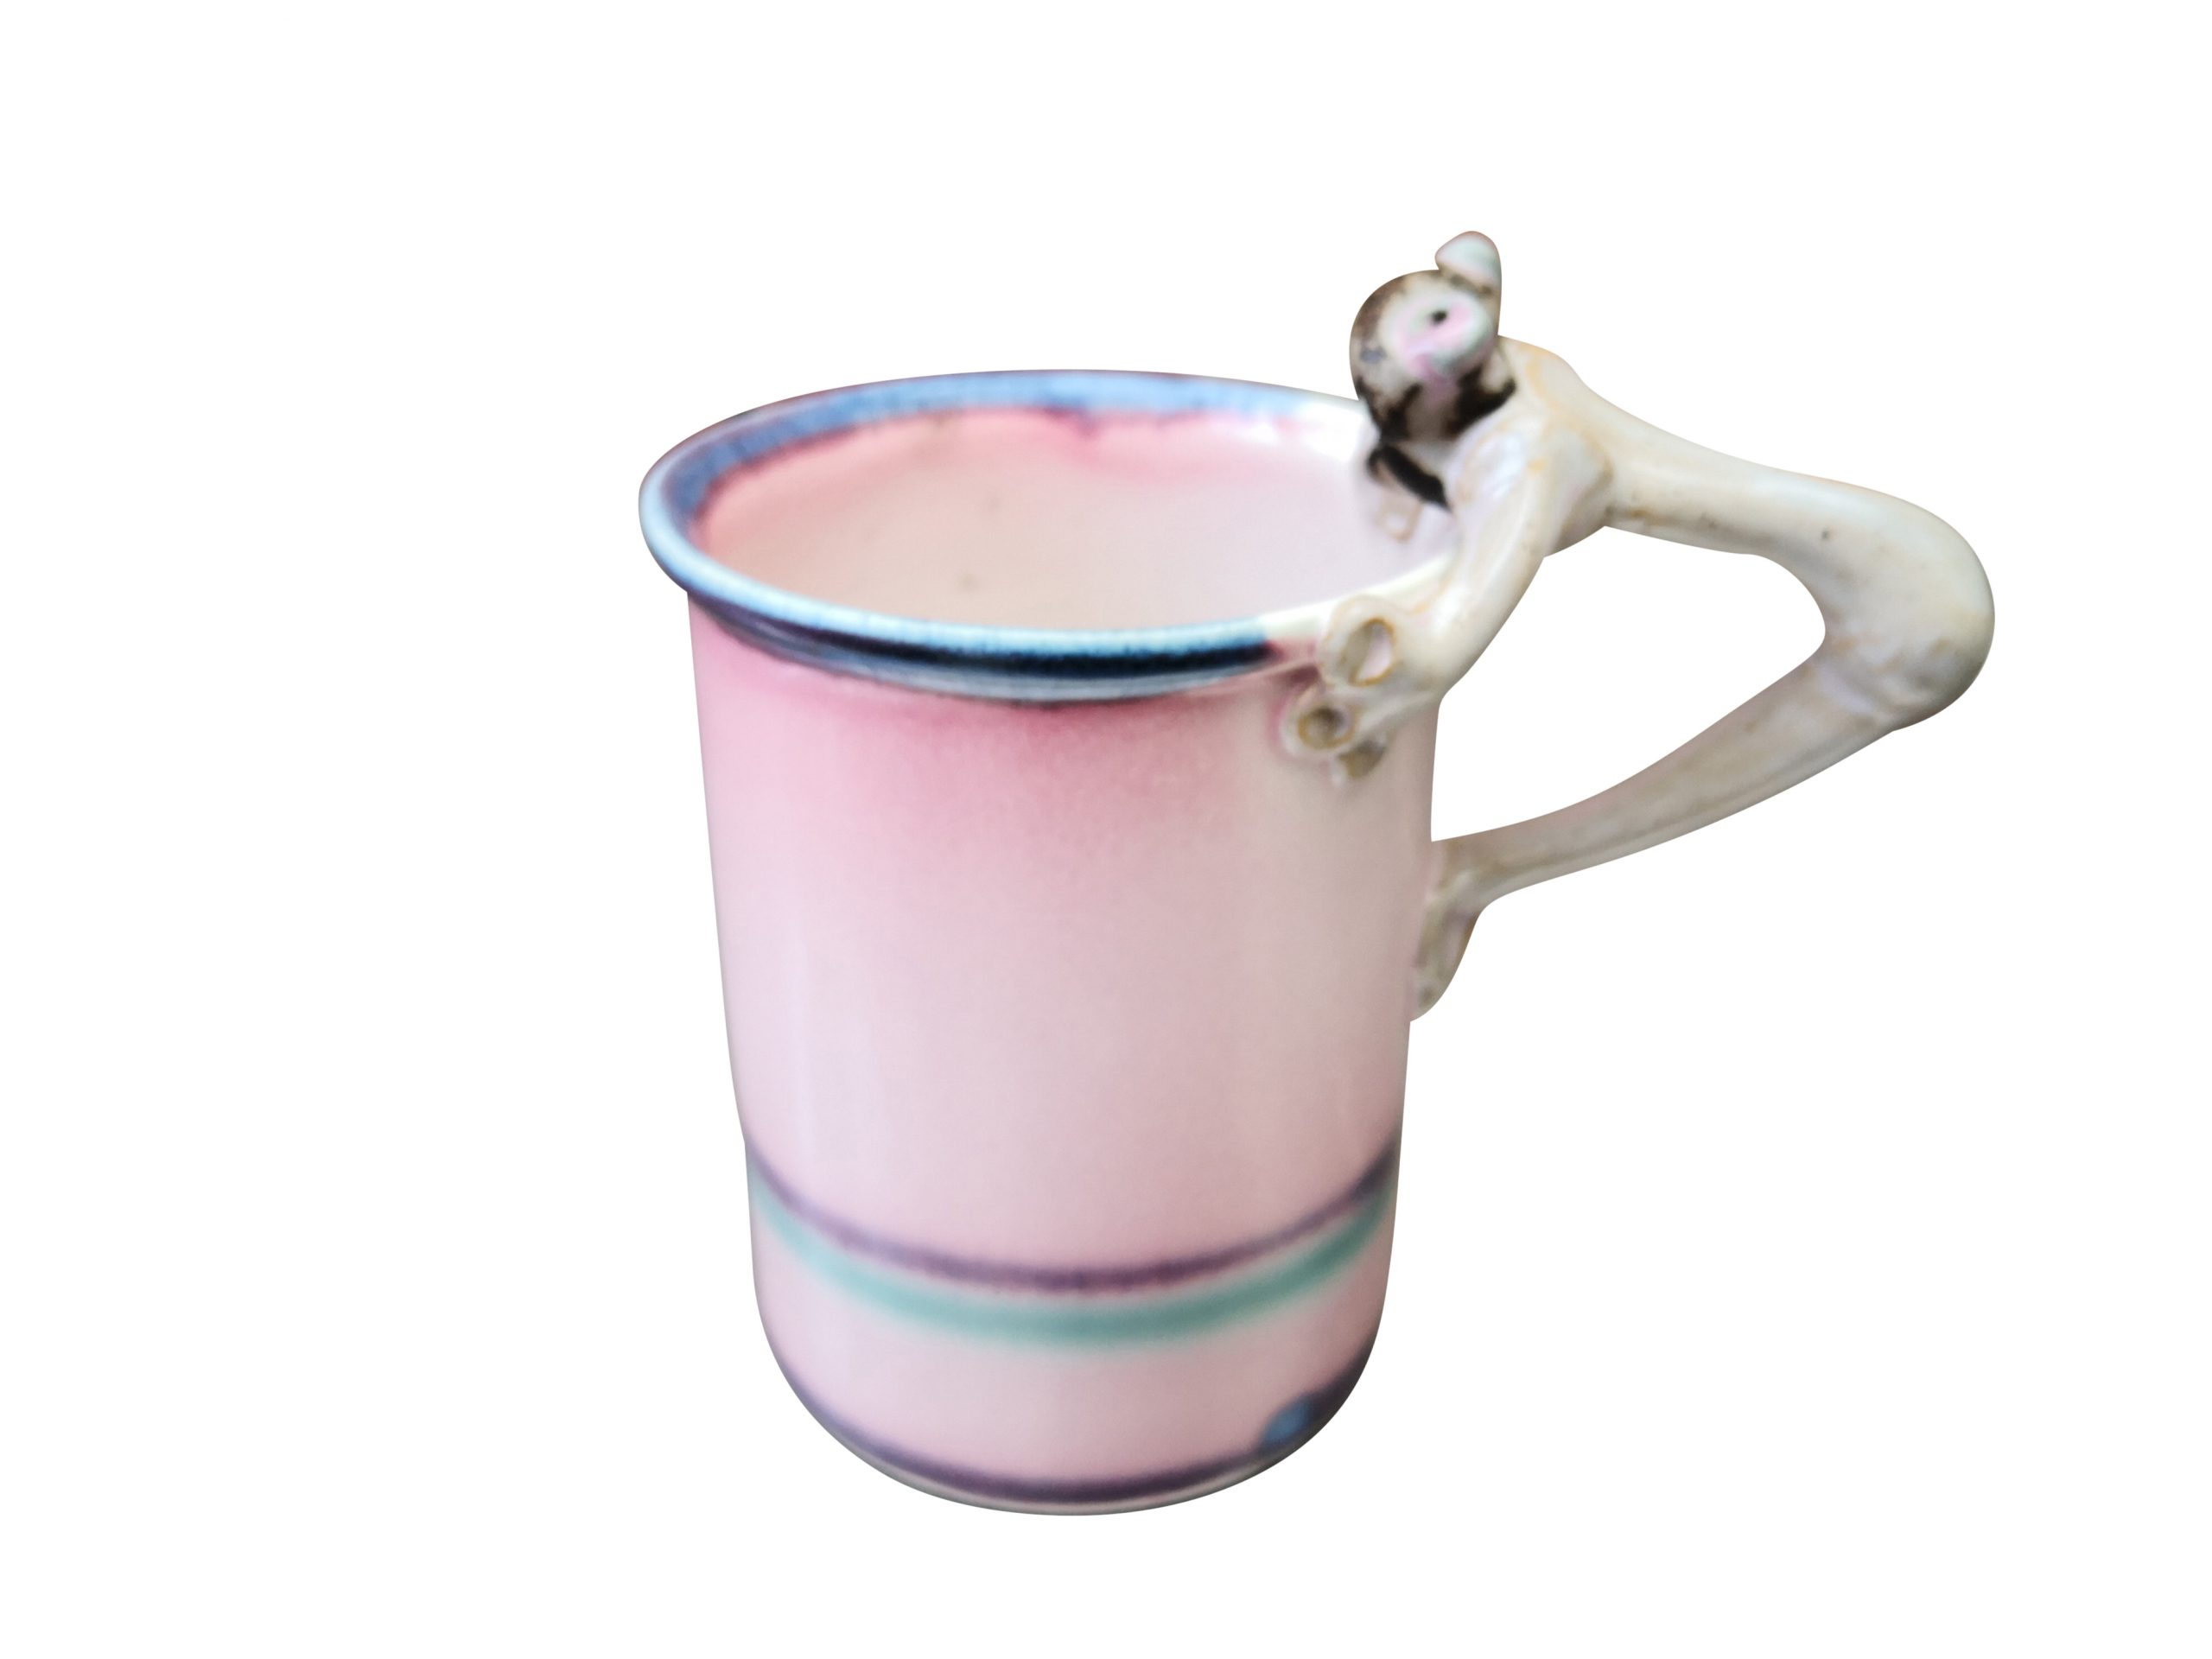 Vintage studio pottery pink mug with frog inside and frog handle - Art pottery at Antik Seramika